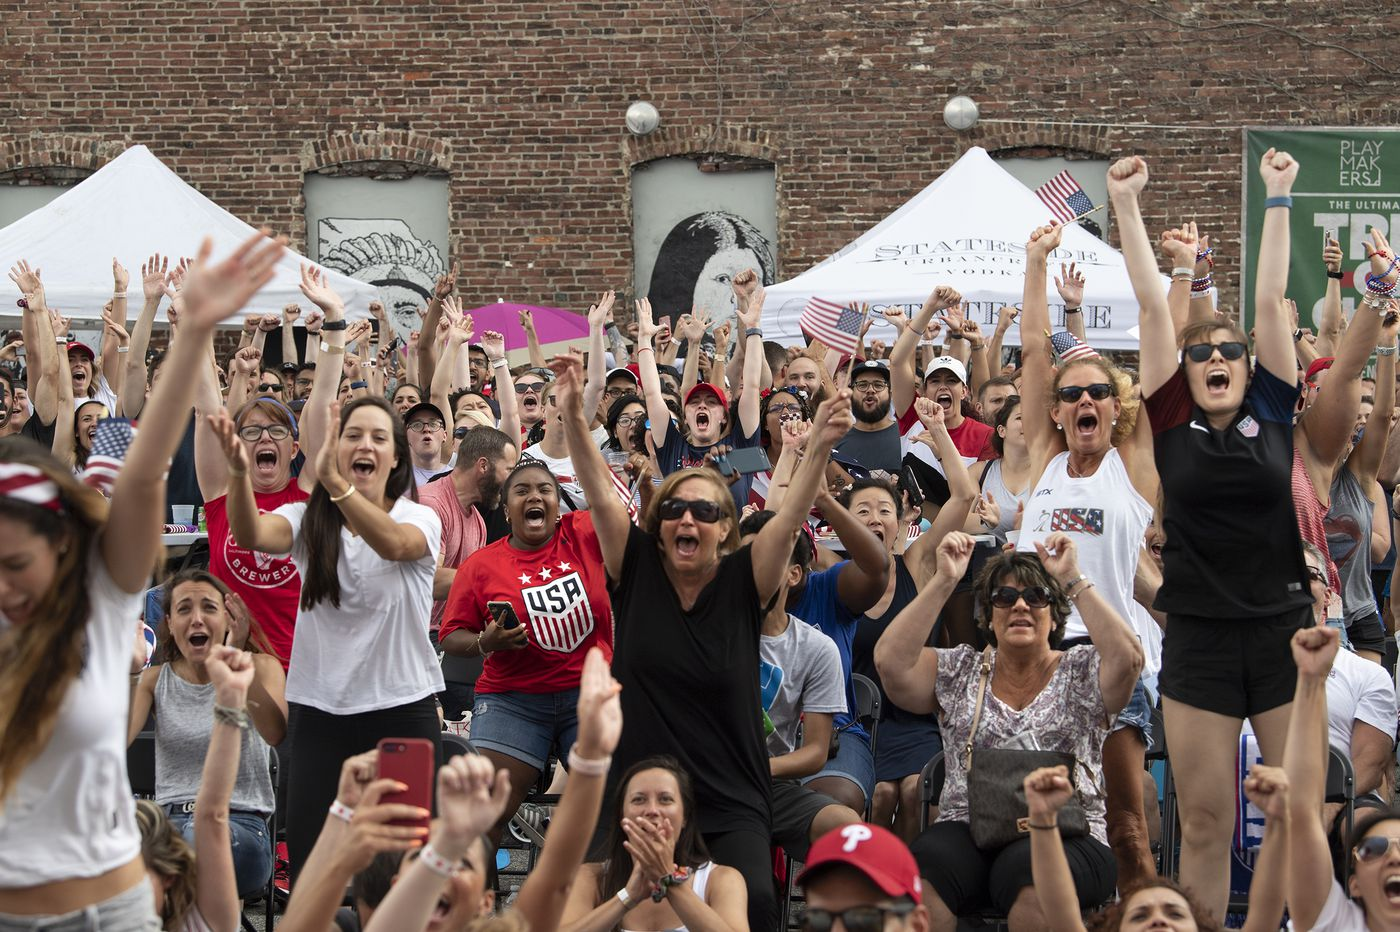 In Philly, fans watch U.S. women cruise to World Cup soccer championship